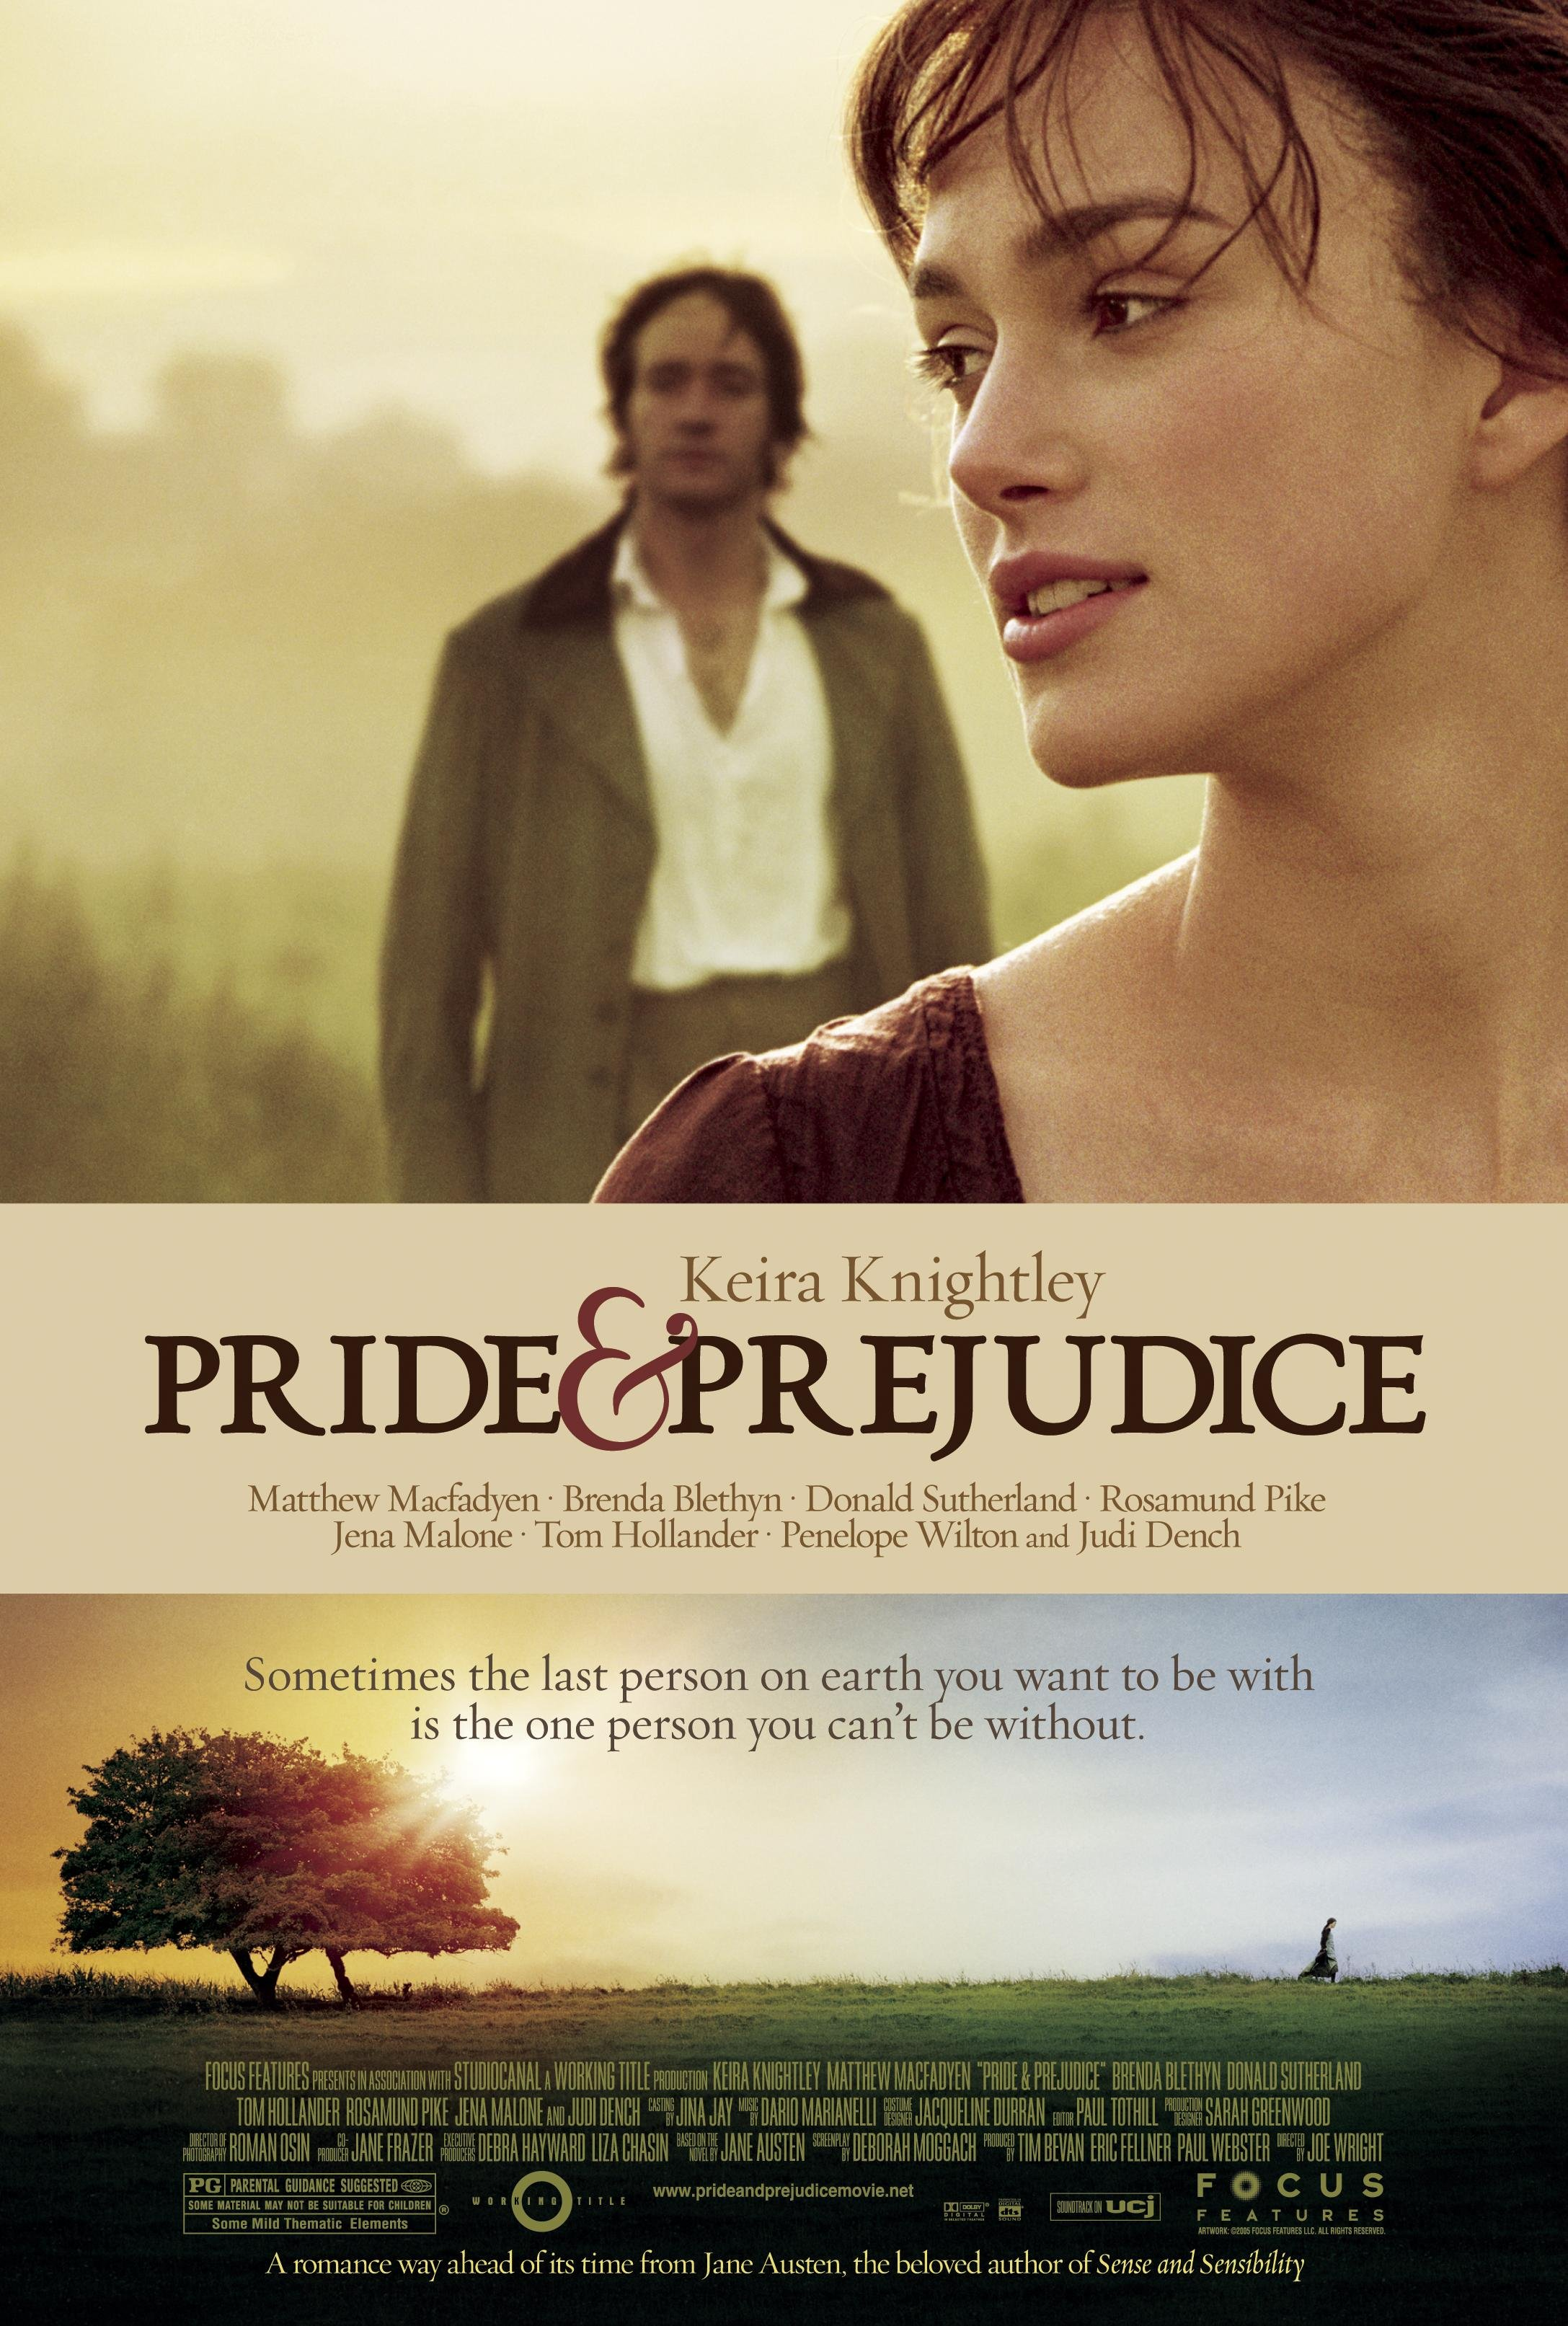 Pride and Prejudice (2005) BluRay 1.2GB [Hindi 5.1 – English 2.0] ESubs MKV